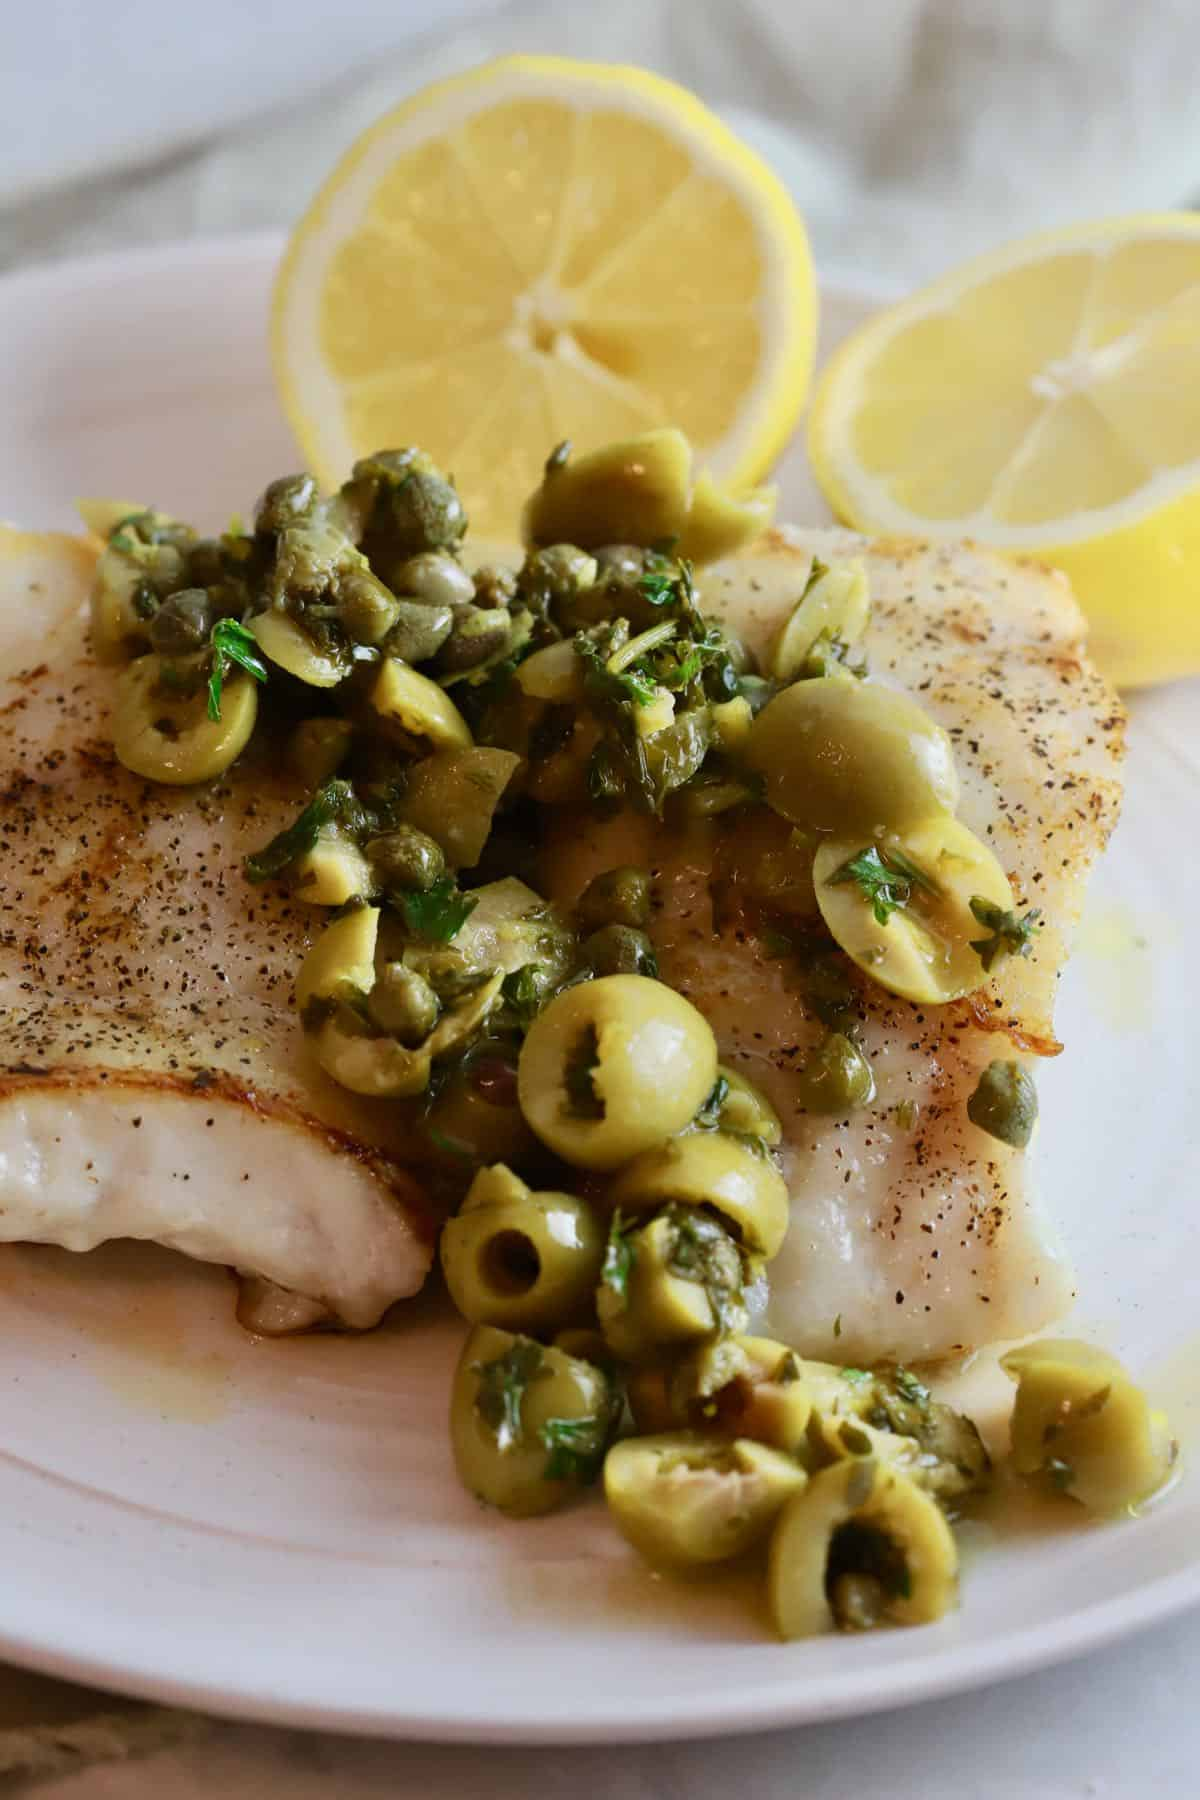 Grouper fillets topped with a Mediterranean topping of olives and capers.